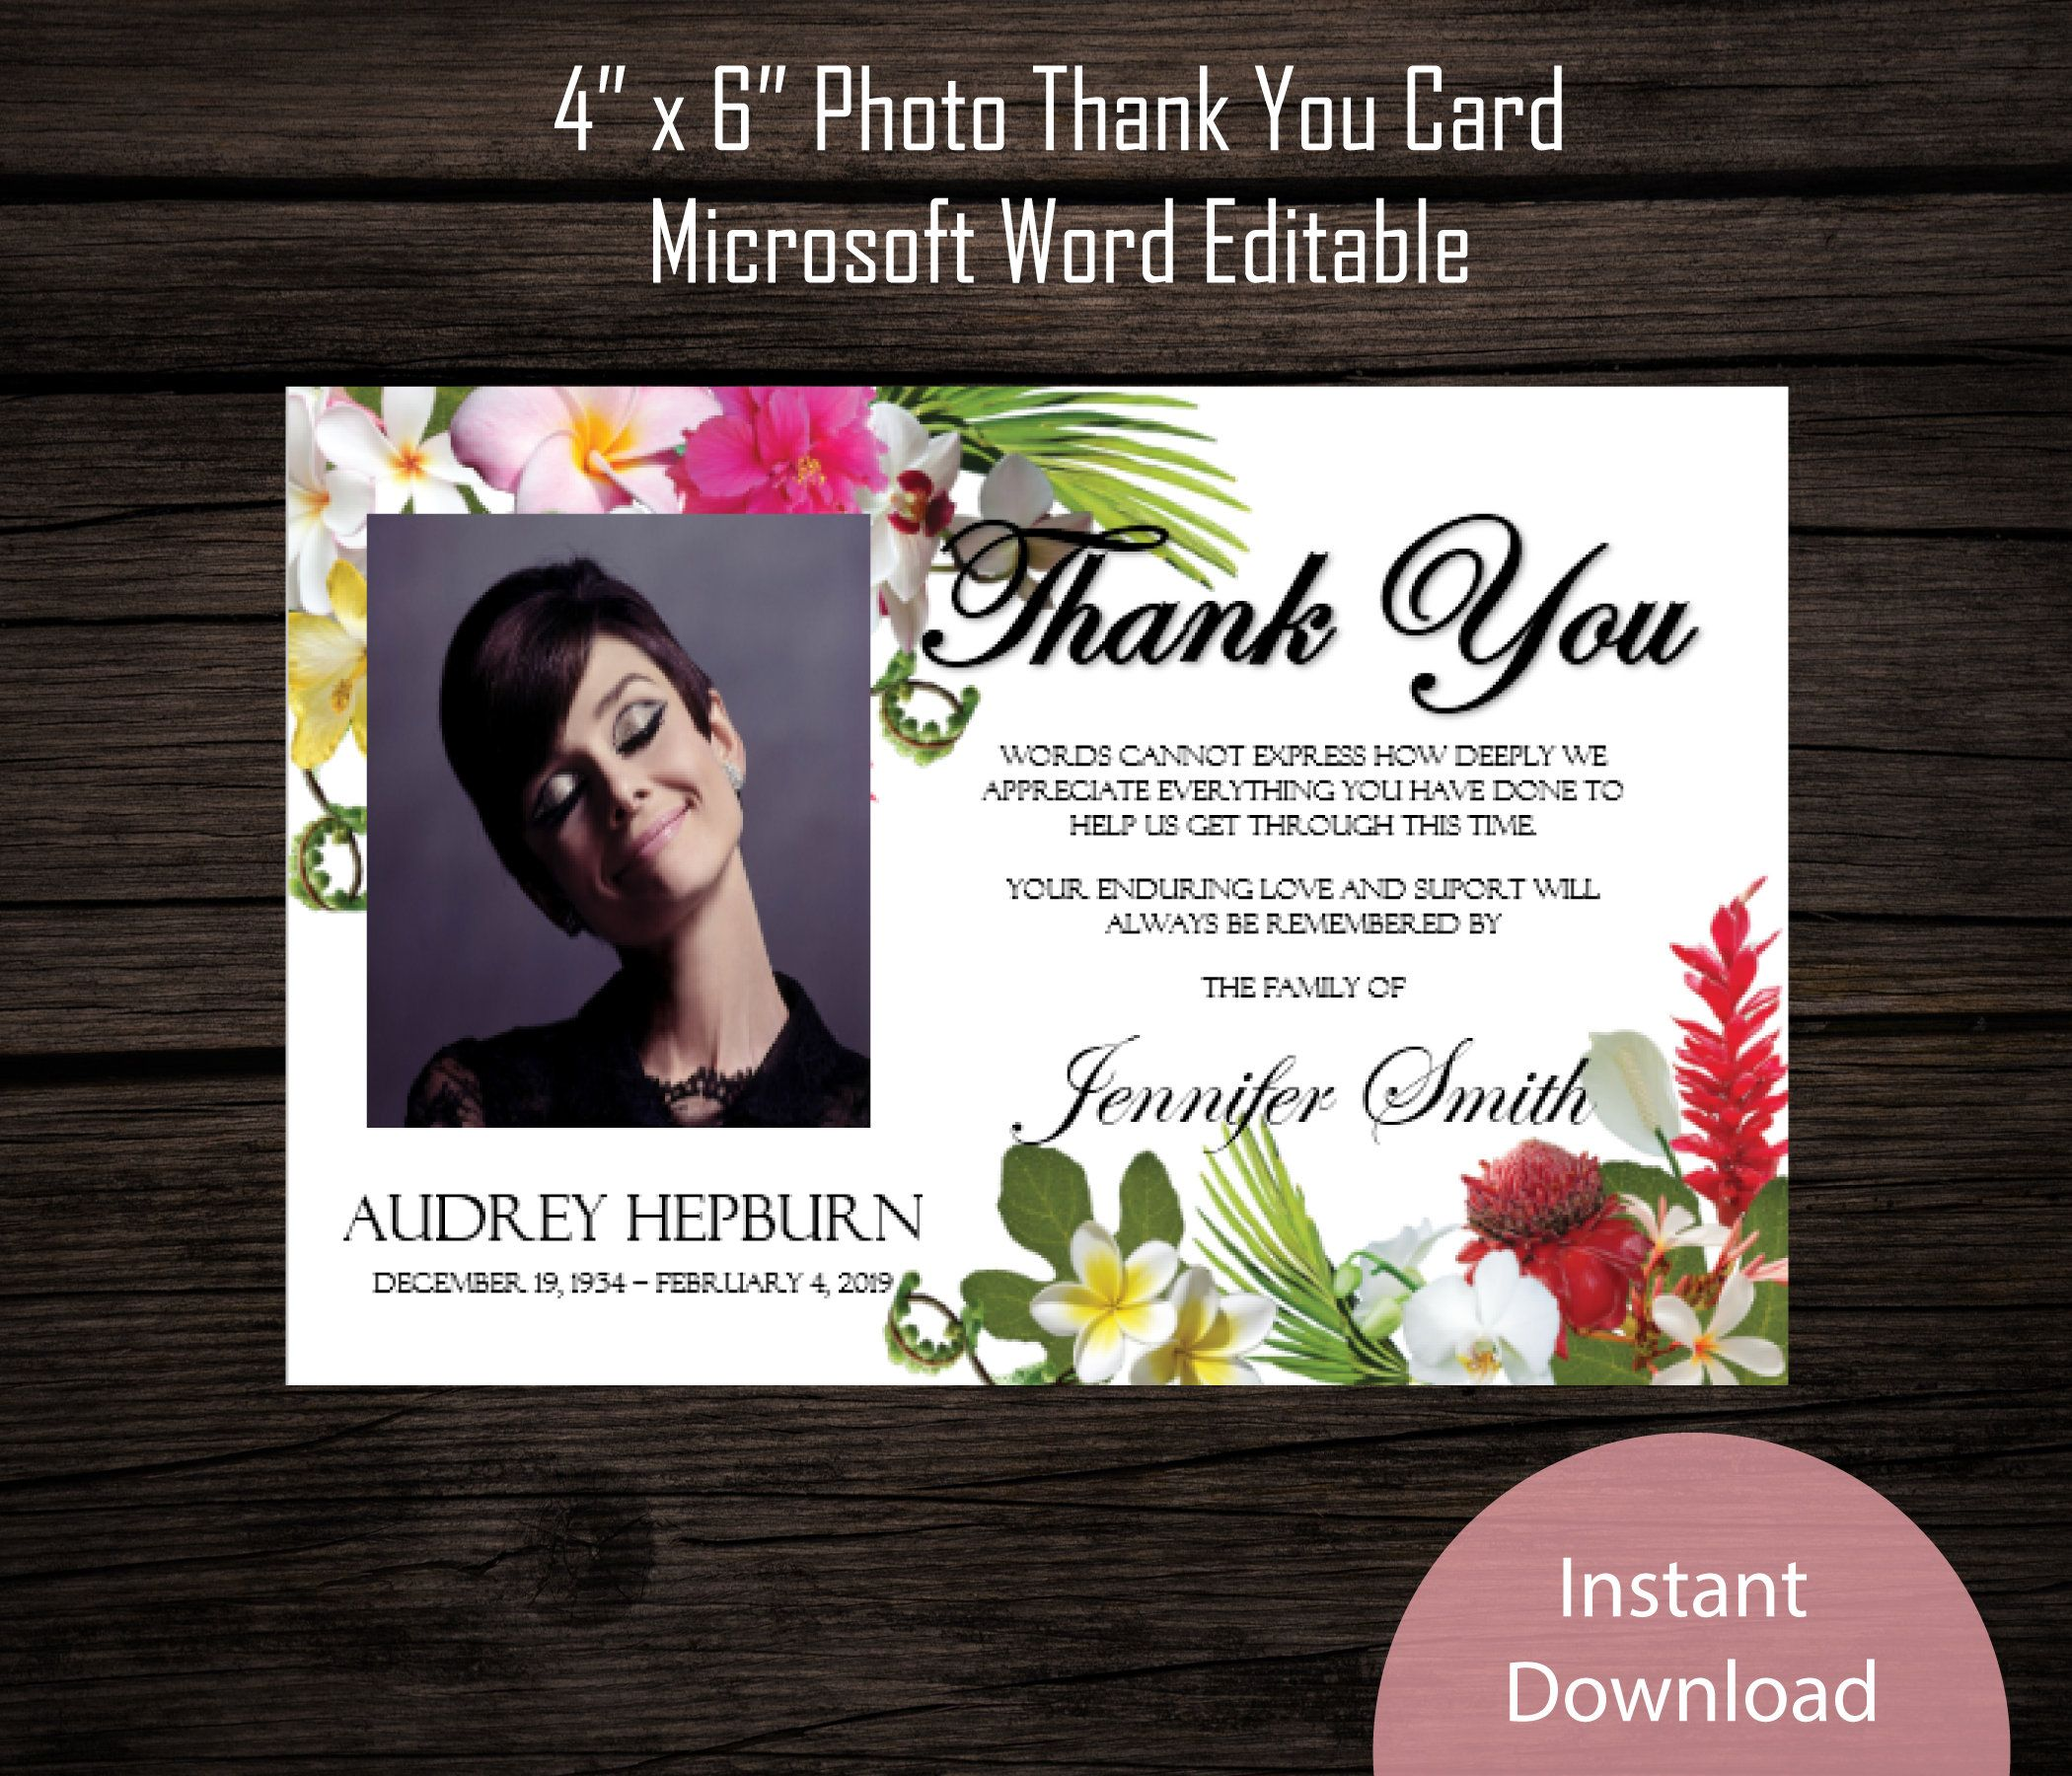 Funeral Photo Thank You Card 4 X 6 Memorial Etsy Photo Thank You Cards Thank You Cards Thank You Card Template